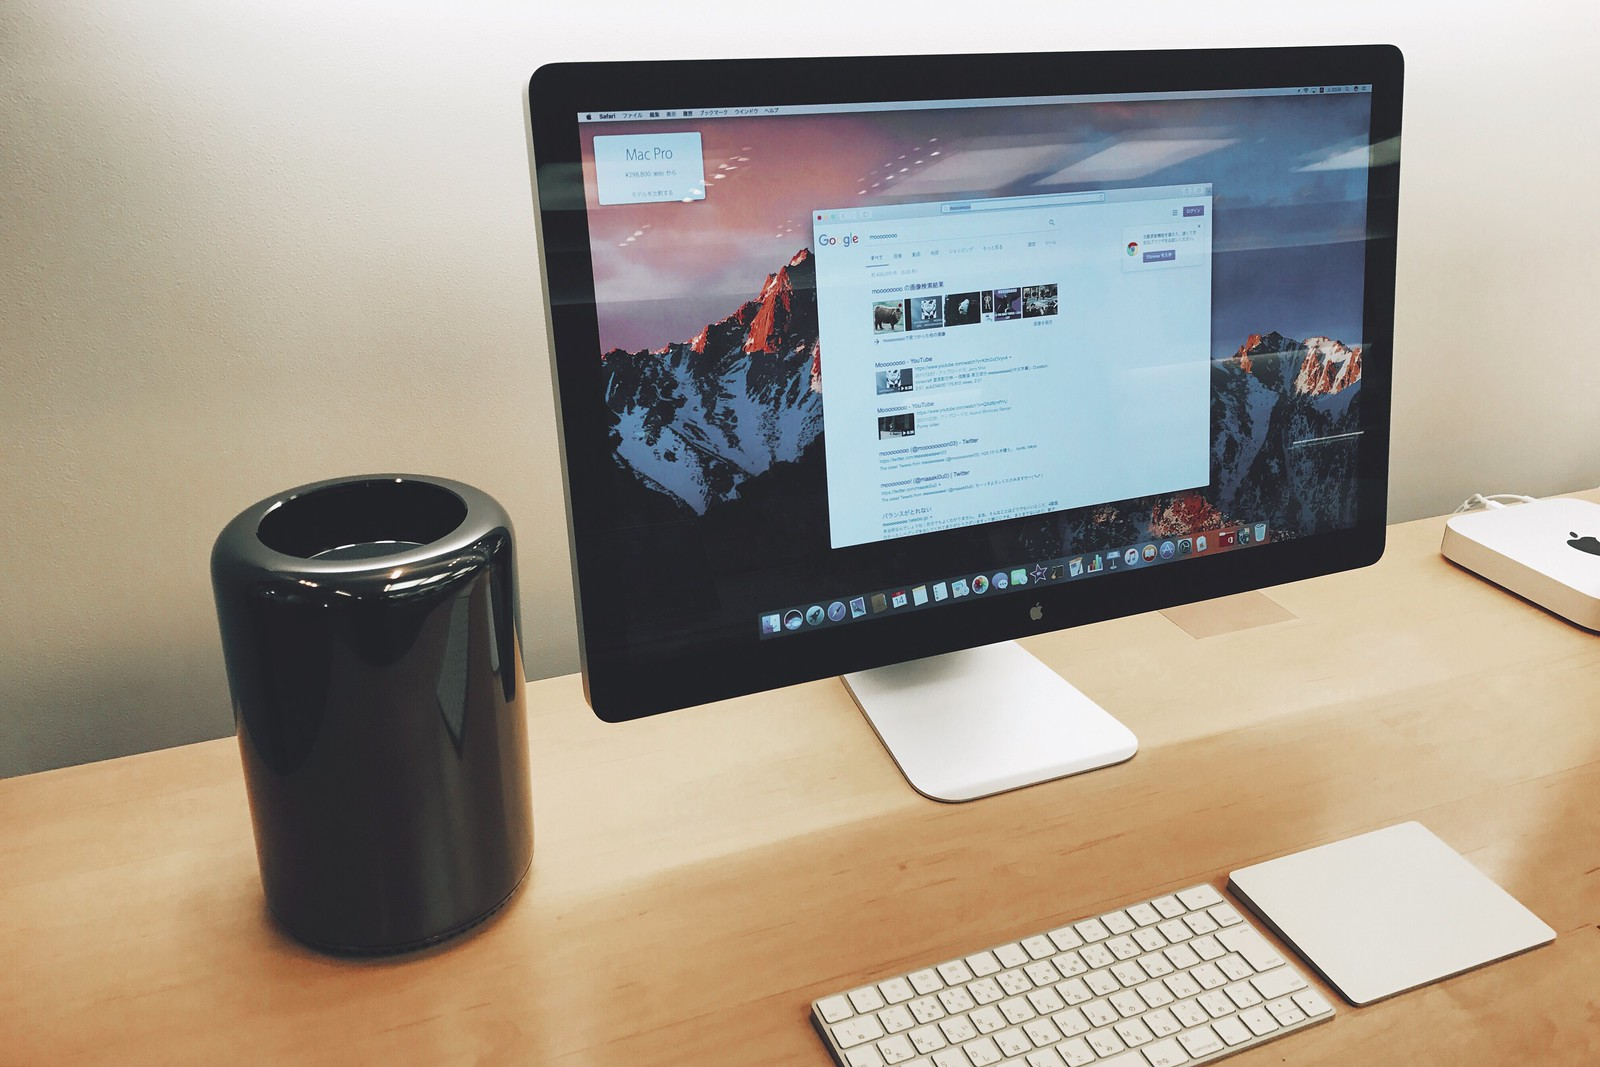 Mac Pro with Cinema Display